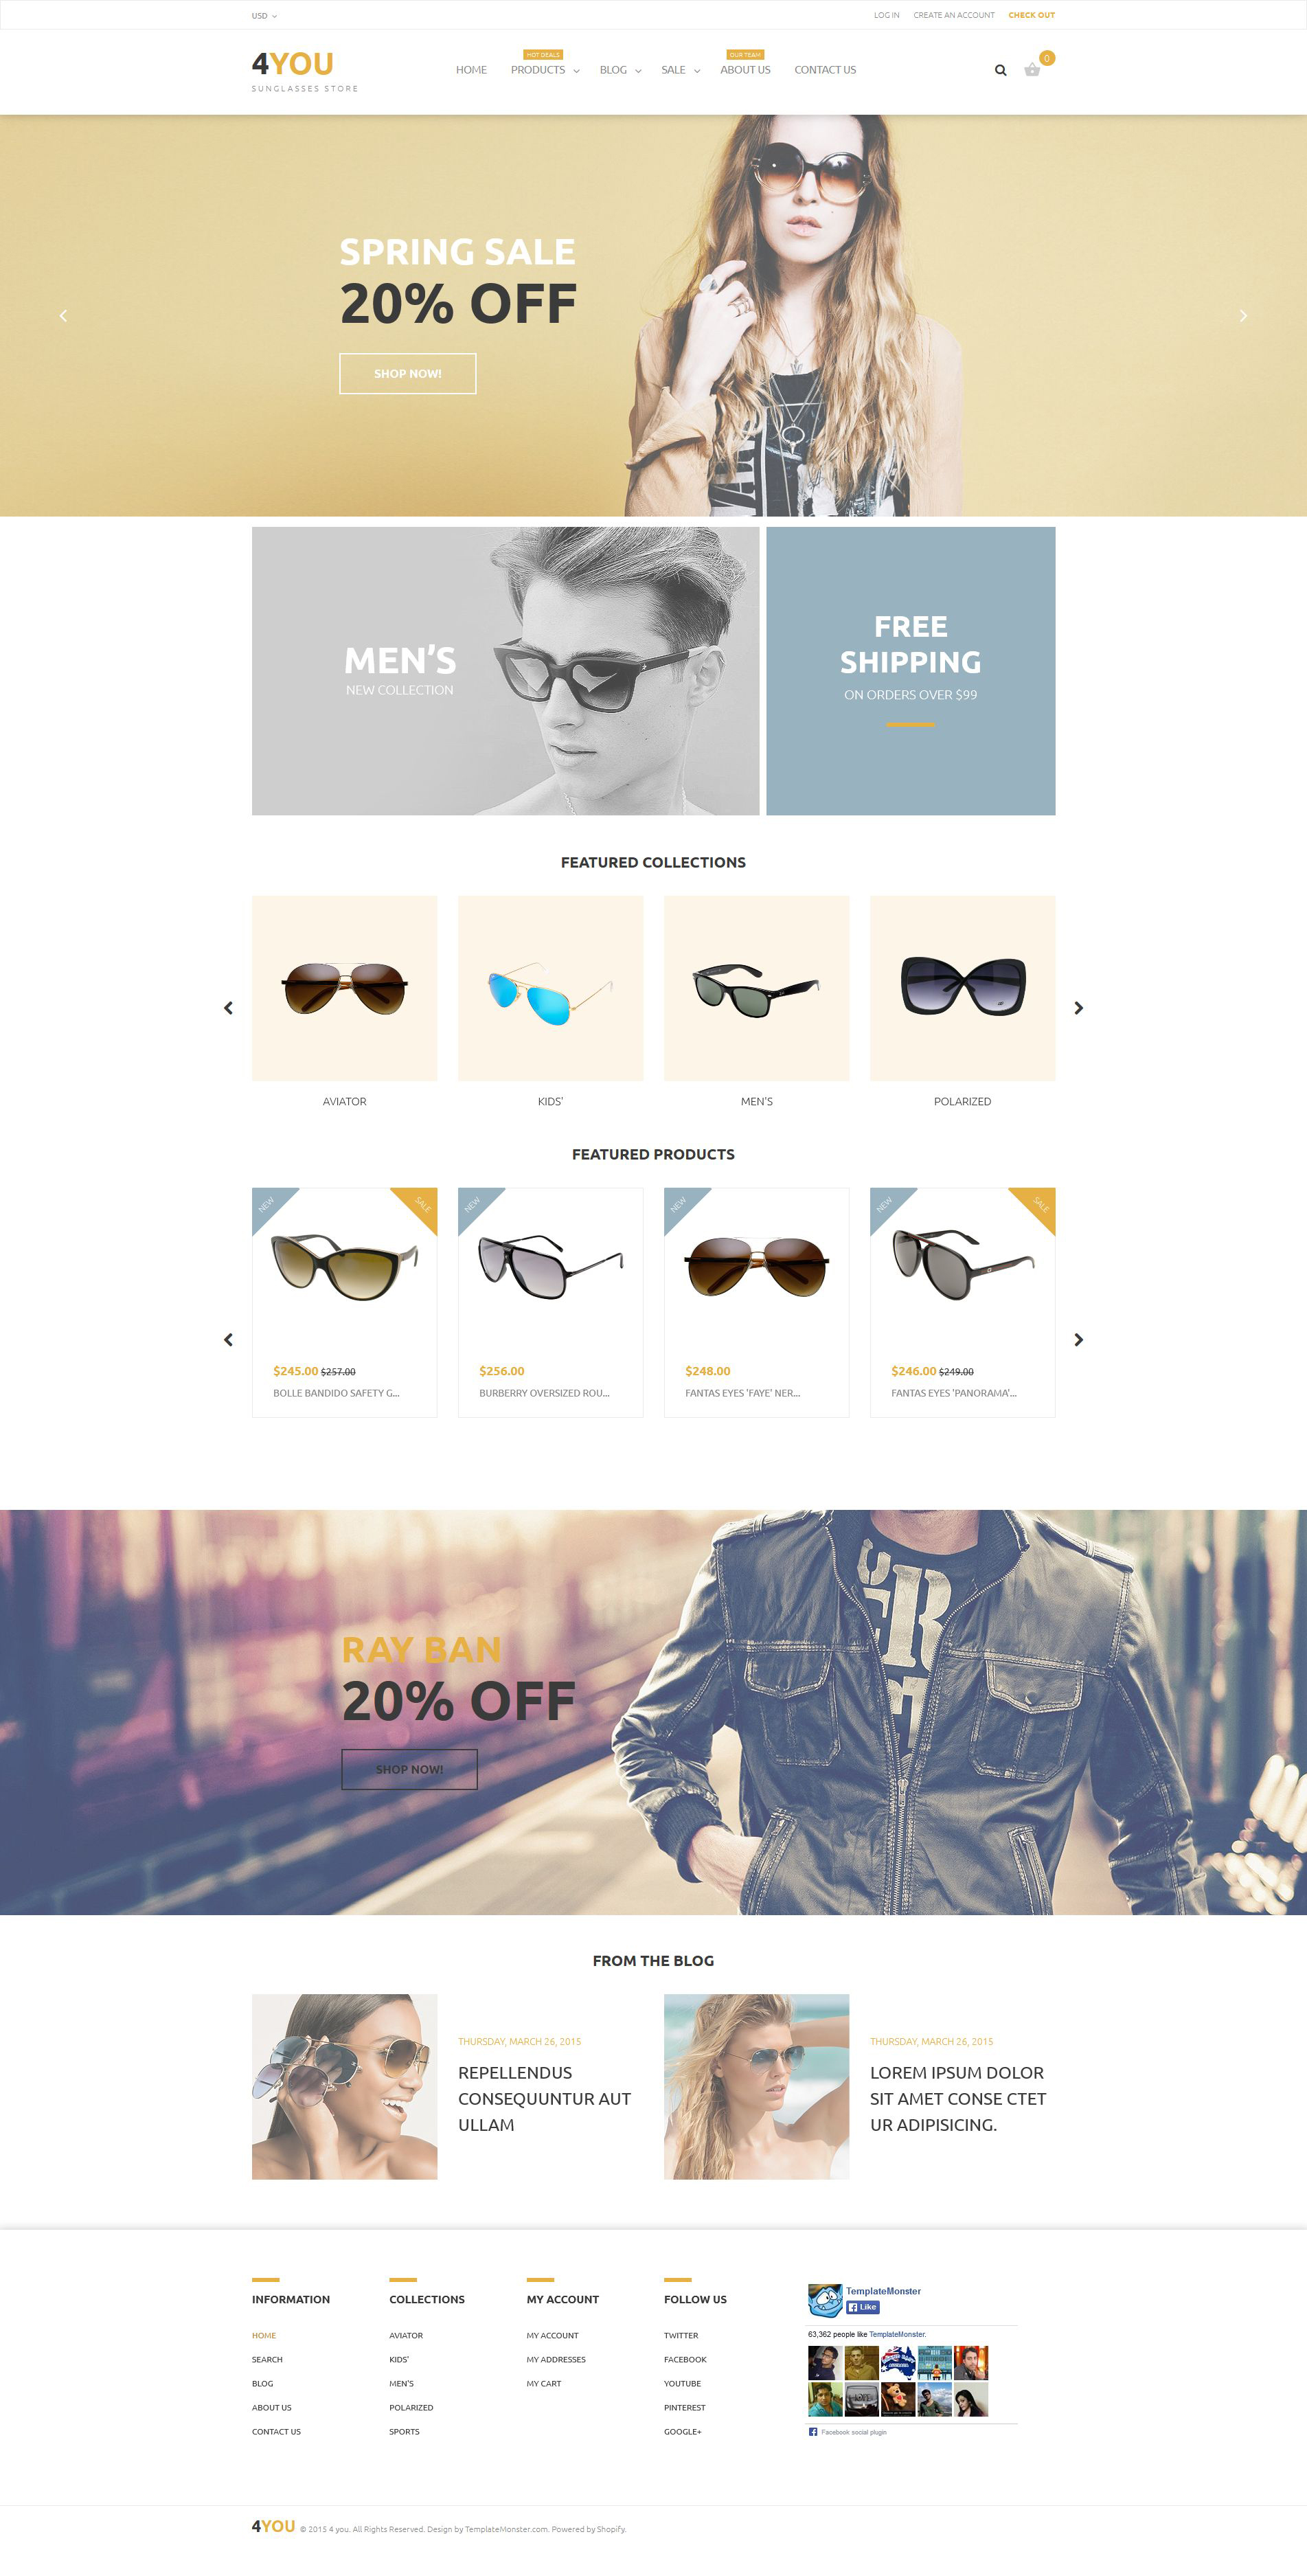 The 4you Sunglasses Shopify Design 53568, one of the best Shopify themes of its kind (fashion, most popular), also known as 4you sunglasses Shopify template, sun Shopify template, glasses Shopify template, accessories Shopify template, watches Shopify template, umbrellas Shopify template, wallets Shopify template, clothing Shopify template, belts Shopify template, jewelry Shopify template, necklaces Shopify template, rings Shopify template, earrings Shopify template, eyewear Shopify template, dresses Shopify template, shoes Shopify template, sandals Shopify template, handbags Shopify template, hair Shopify template, carves Shopify template, hats and related with 4you sunglasses, sun, glasses, accessories, watches, umbrellas, wallets, clothing, belts, jewelry, necklaces, rings, earrings, eyewear, dresses, shoes, sandals, handbags, hair, carves, hats, etc.